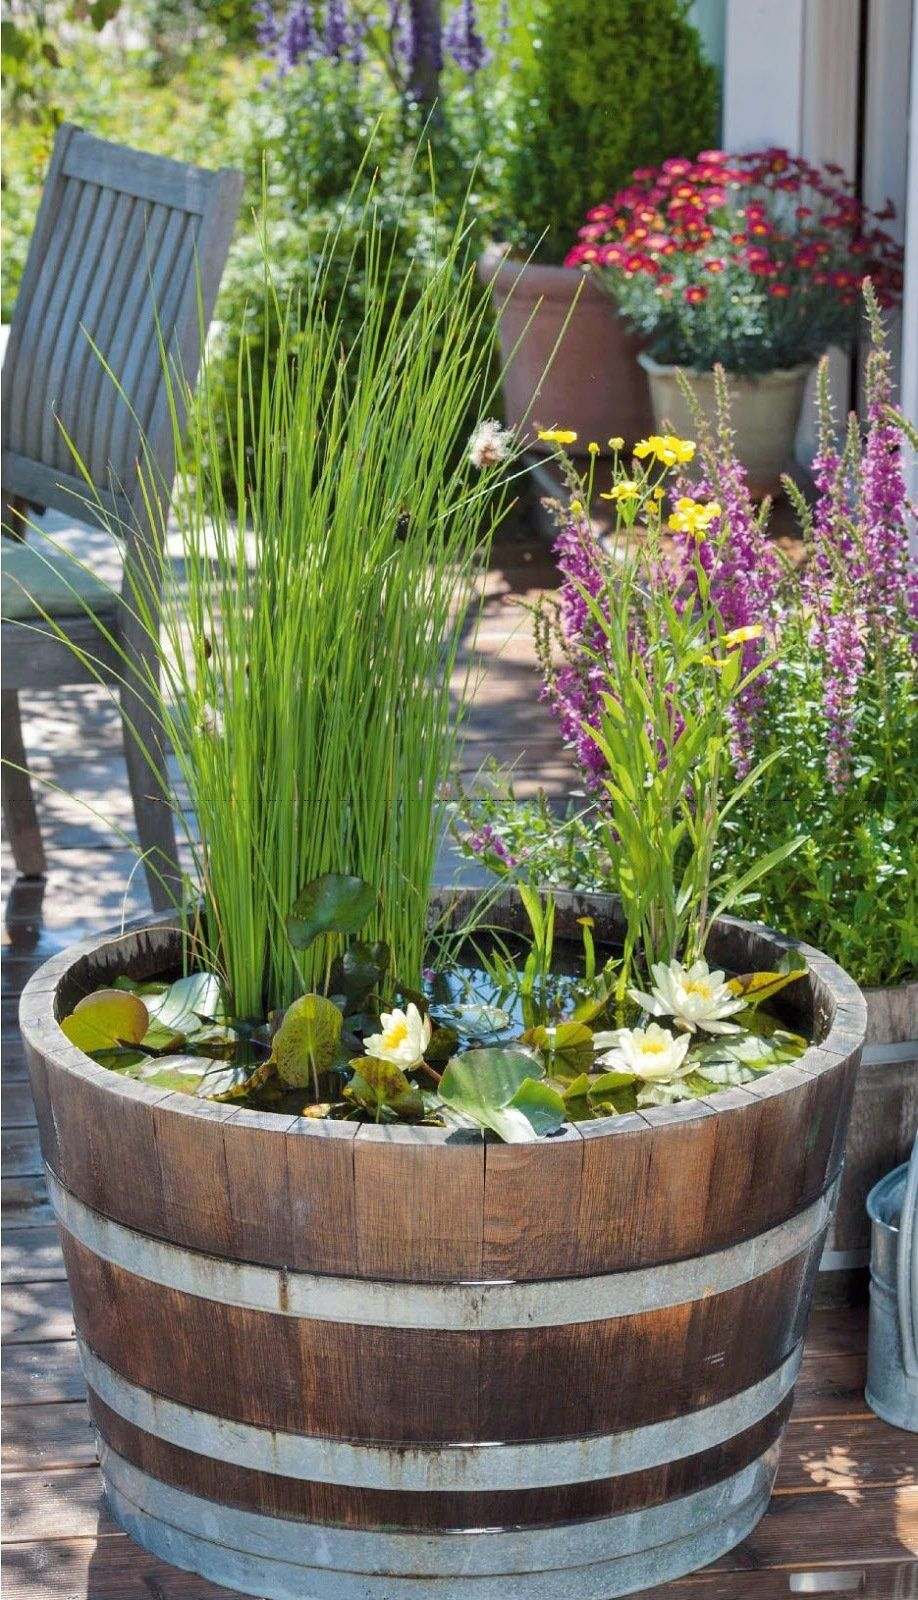 Zinkwanne Obi Make Your Own Balcony Ideas A Mini Pond In The Pot